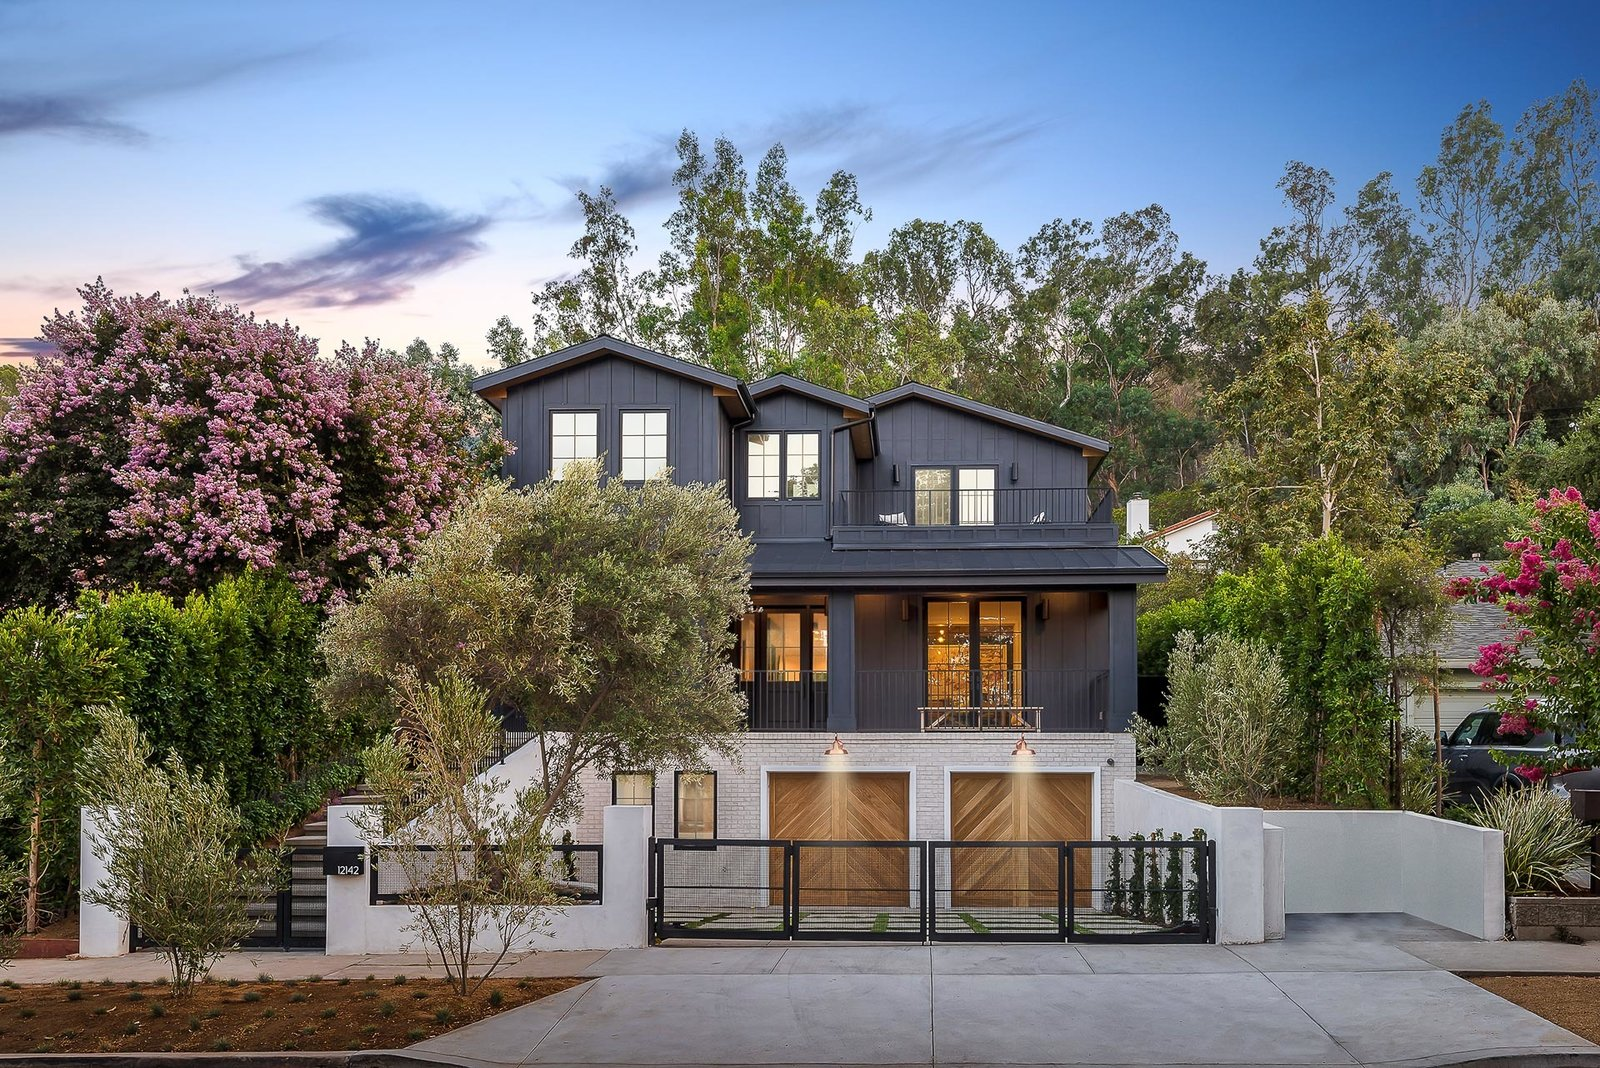 House Building Type  One of a Kind New Construction